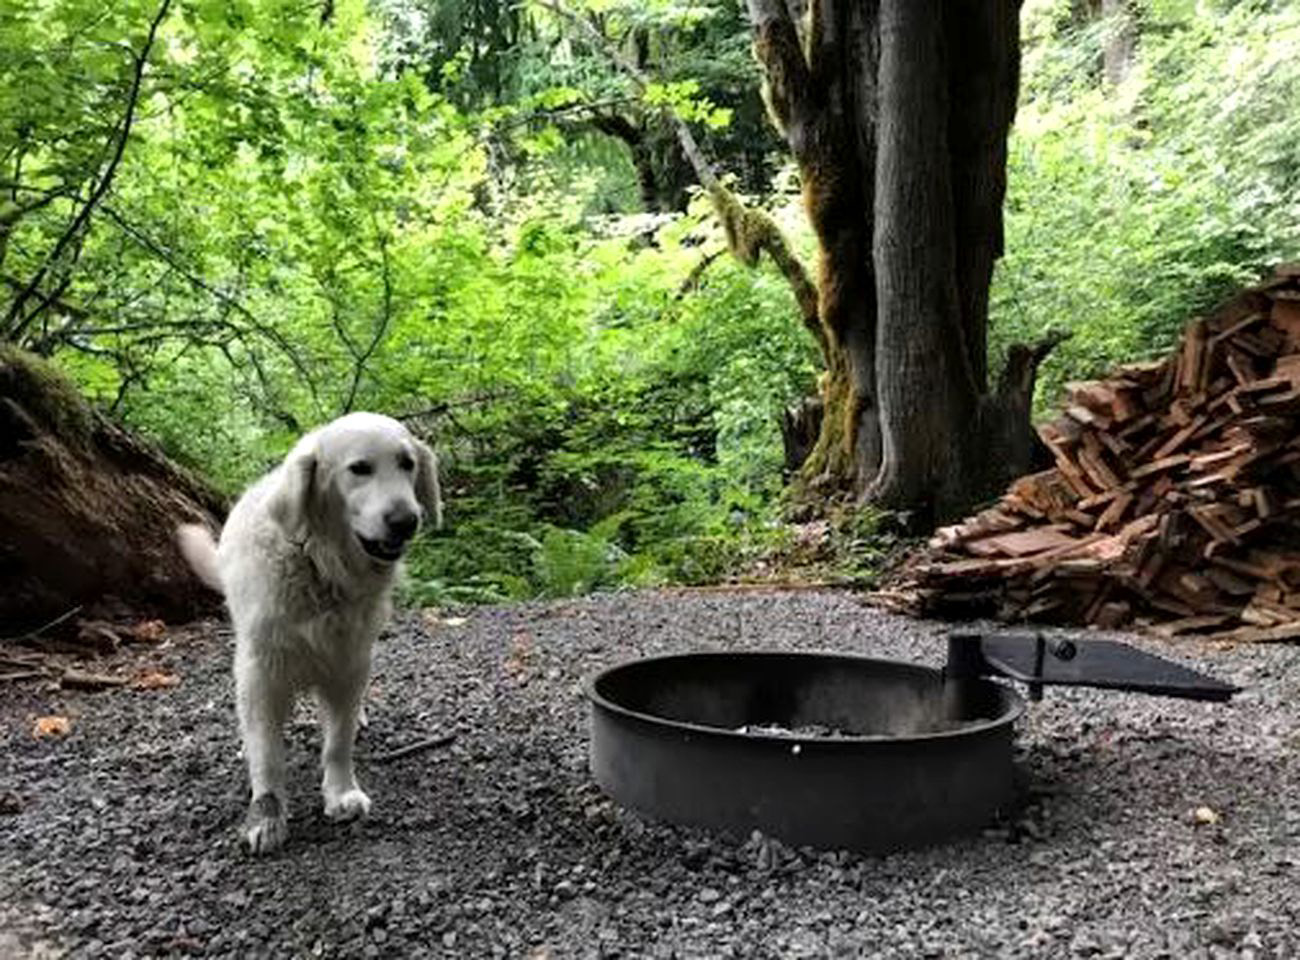 A white dog stands next to the metal outdoor fire pit